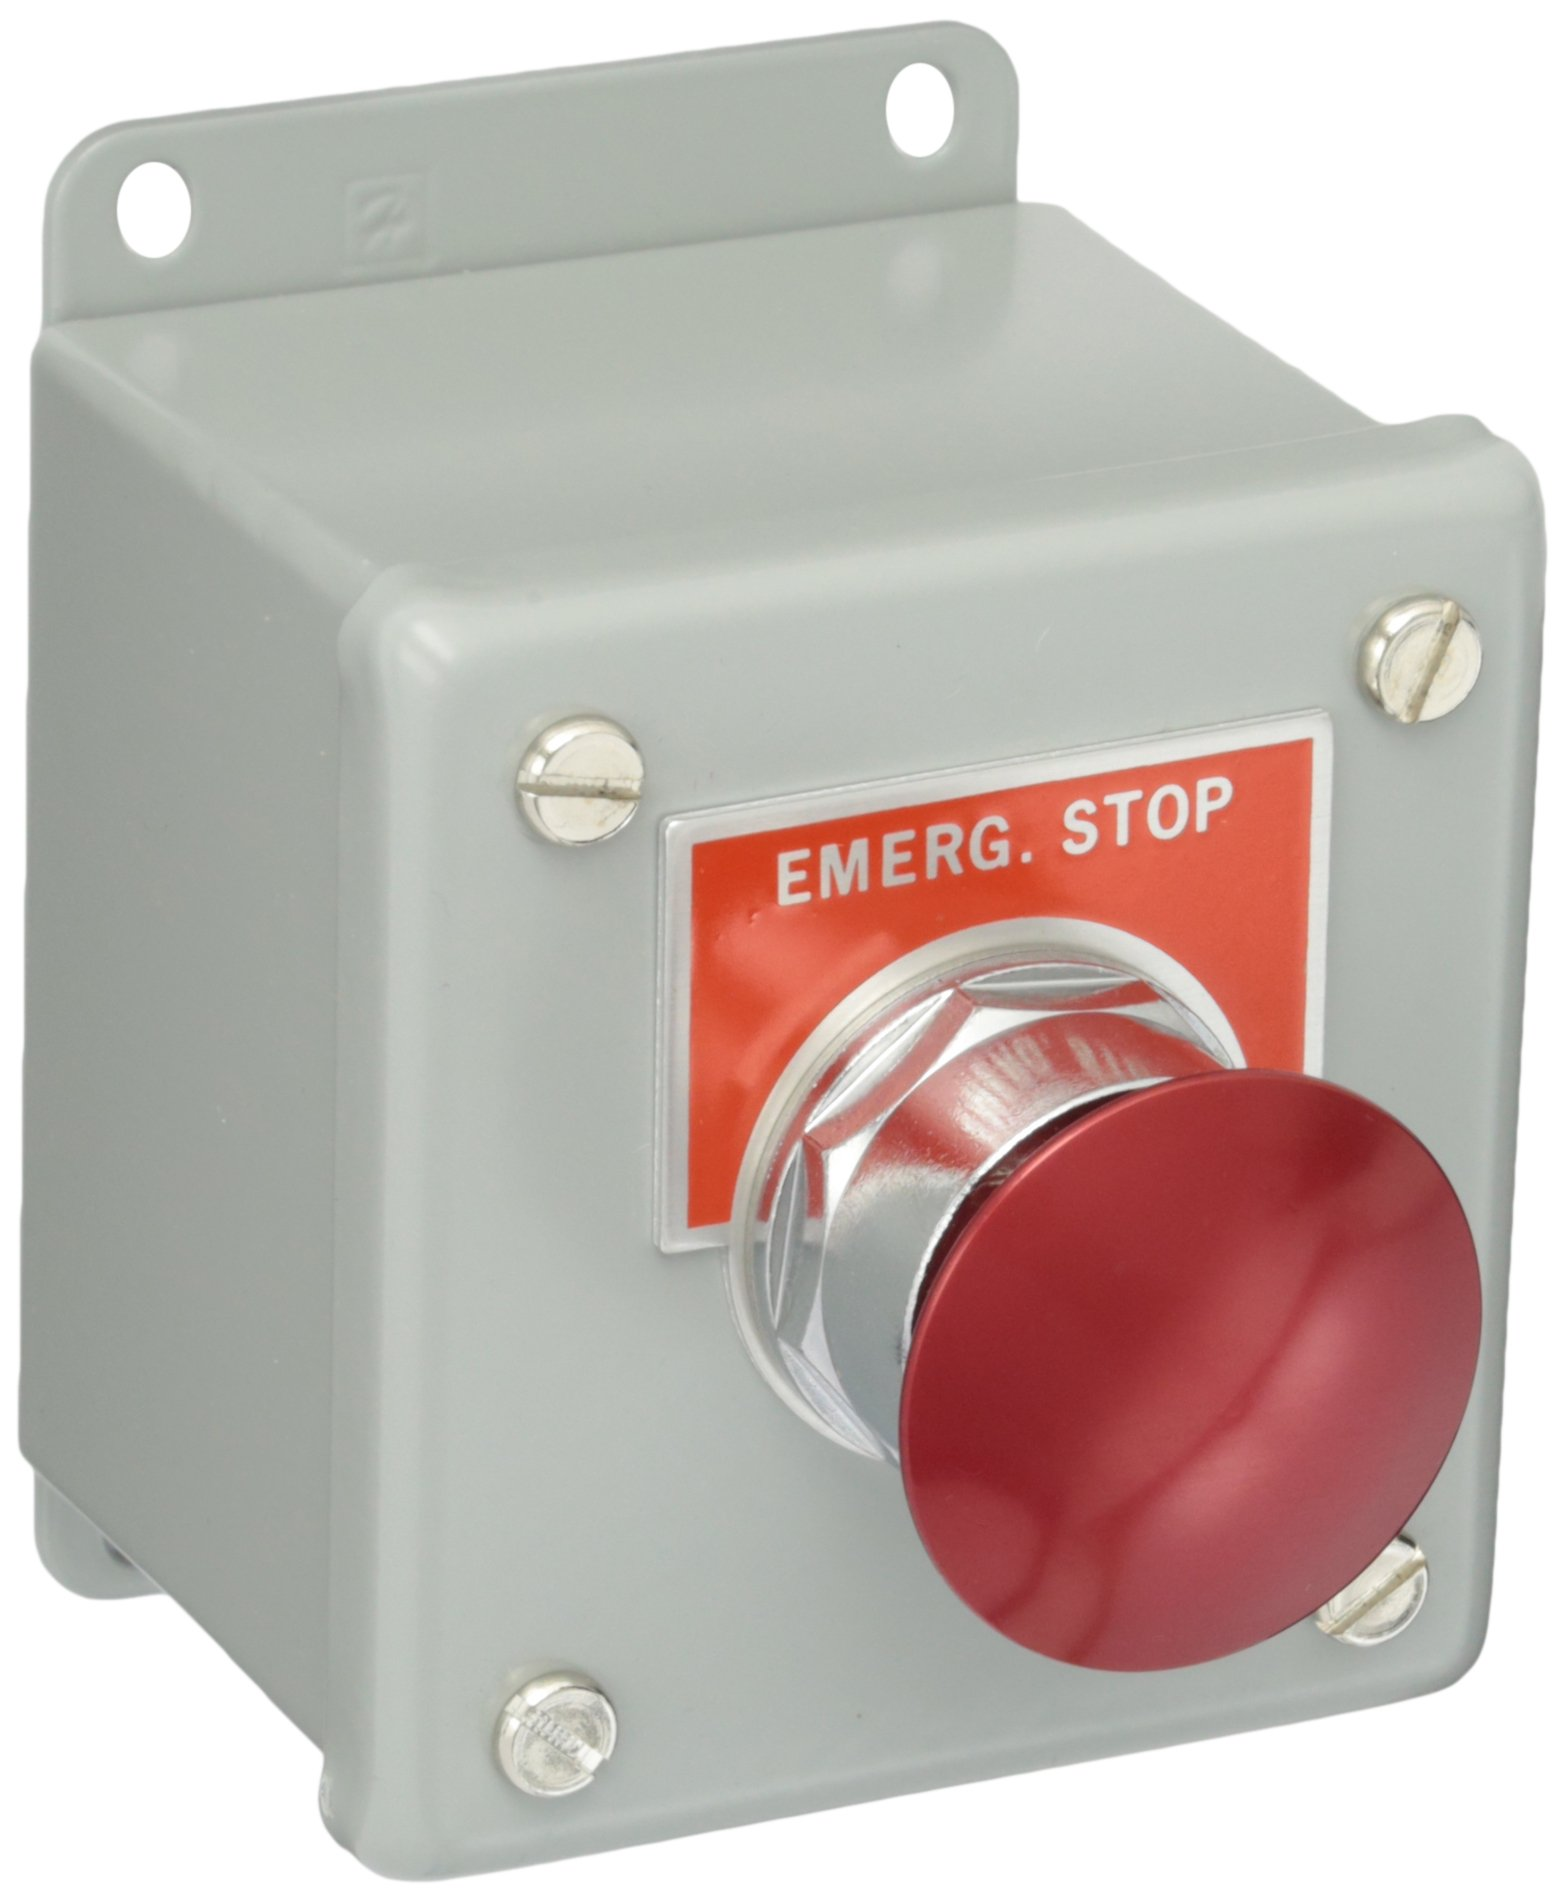 Siemens 52C117A Heavy Duty Pushbutton Control Station, Water and Oil Tight, 1 Command Point, Maintained Operation, Mushroom Head, Metal, Red, ''EMERGENCY STOP'' Labeled, NEMA 12 Protection, 1 NO + 1 NC Contact Types